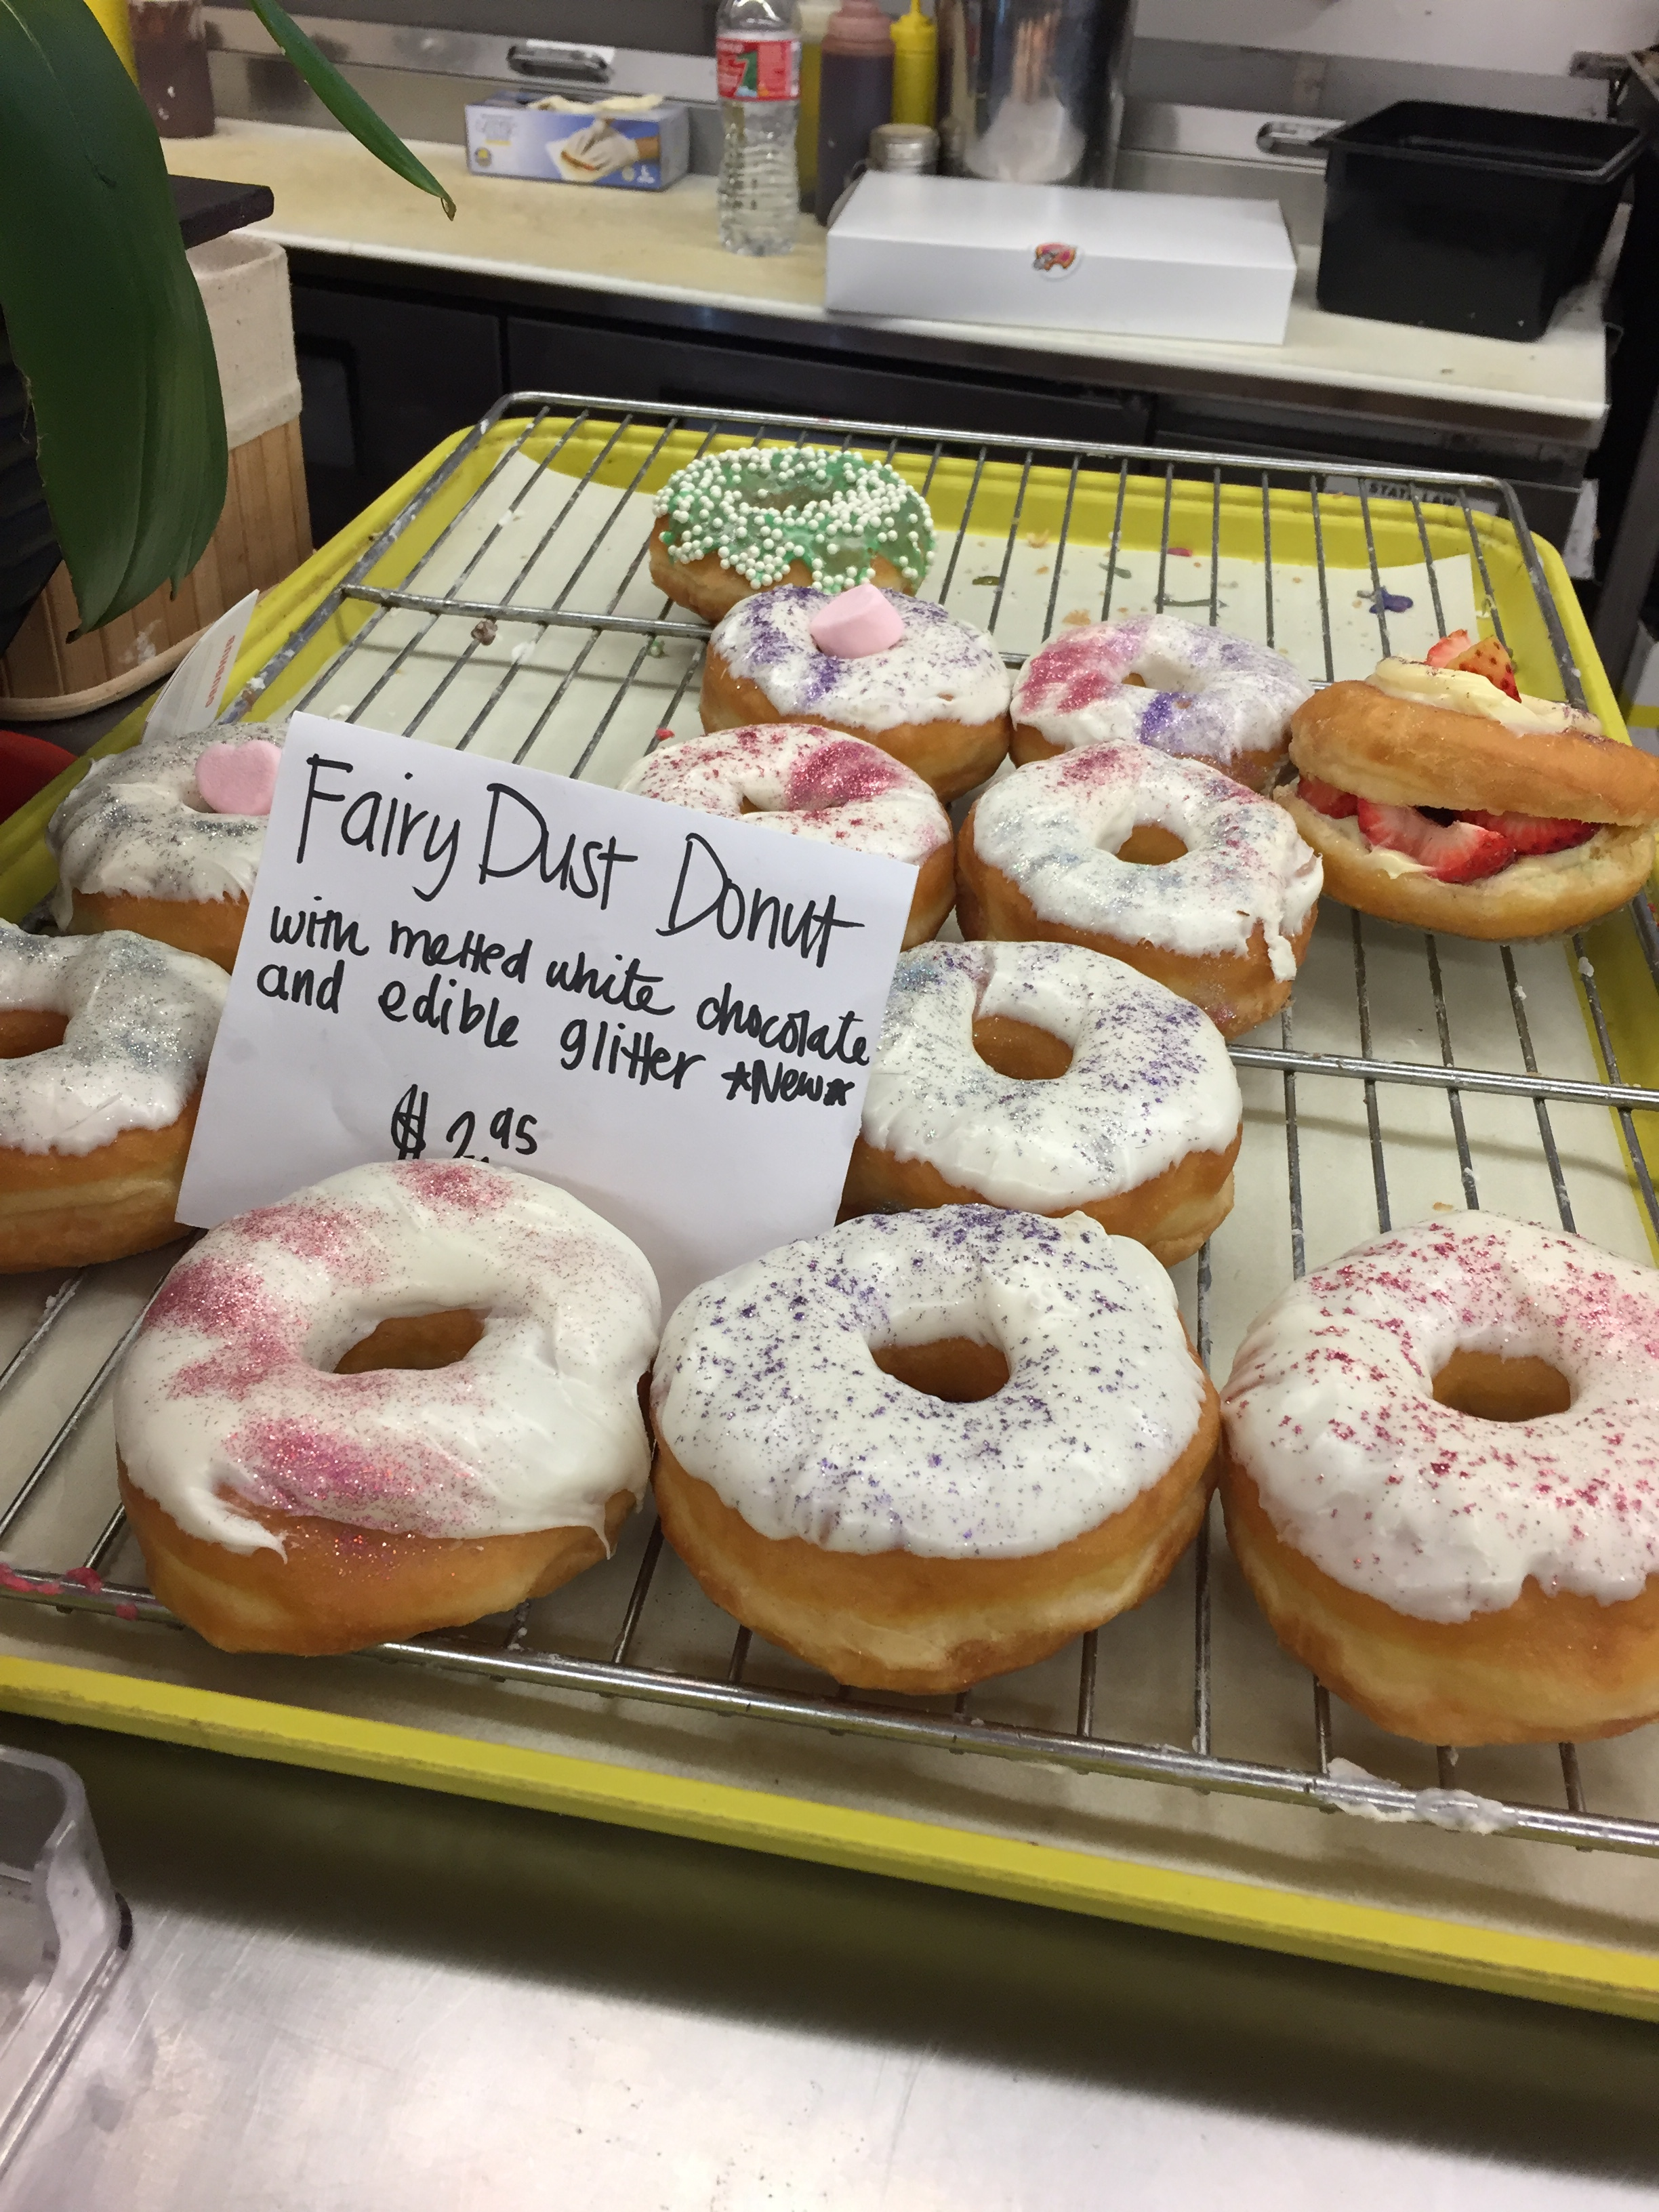 They also have fairy dust donuts.